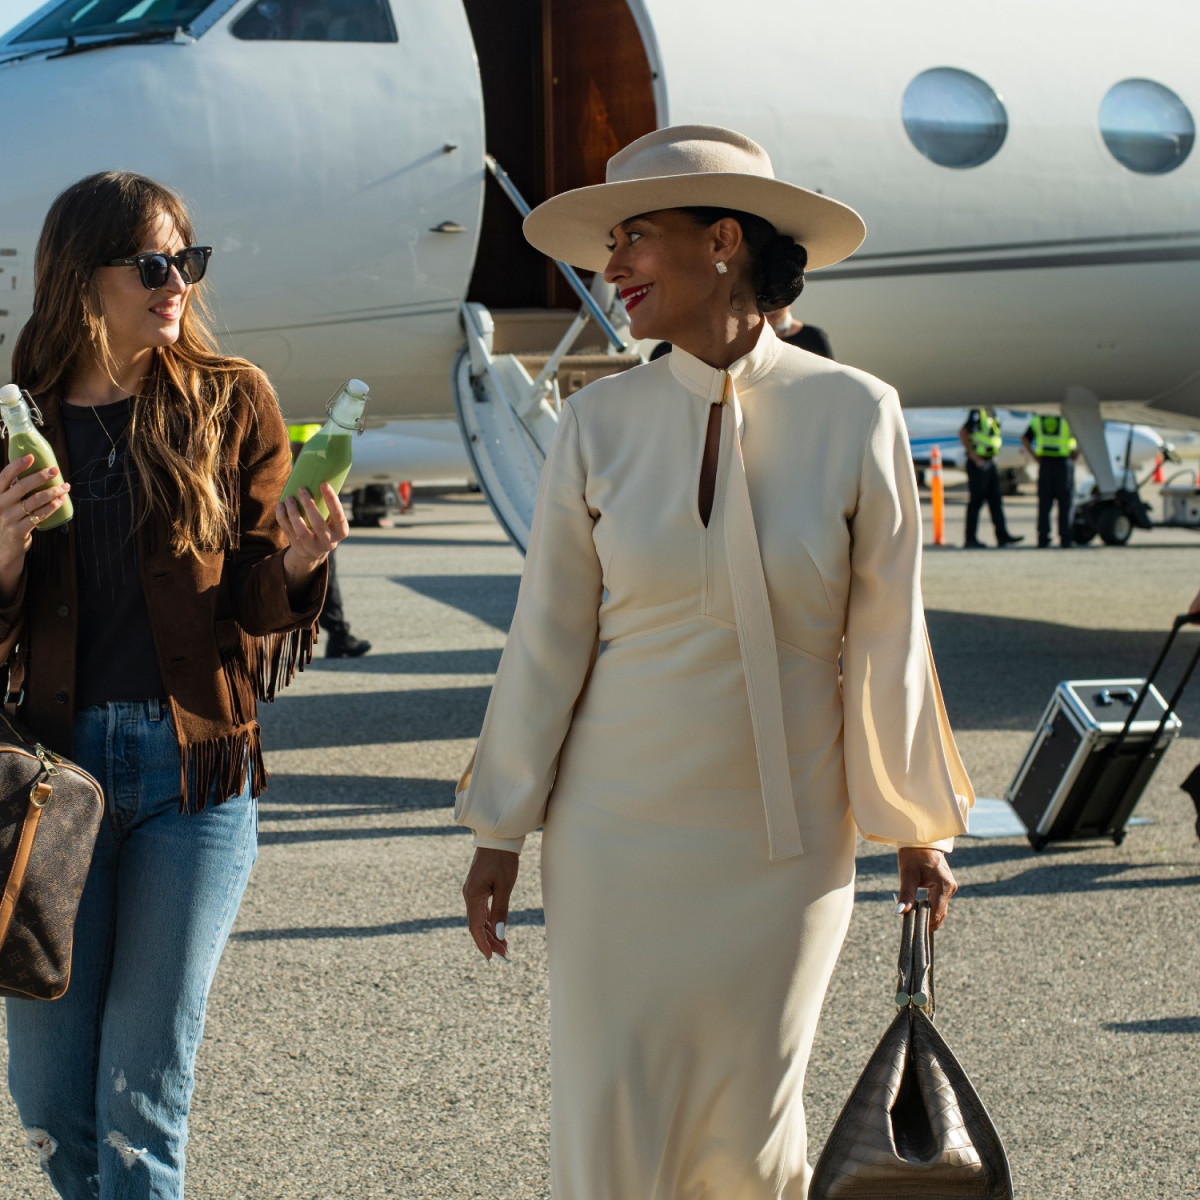 Dakota Johnson and Tracee Ellis Ross in The High Note